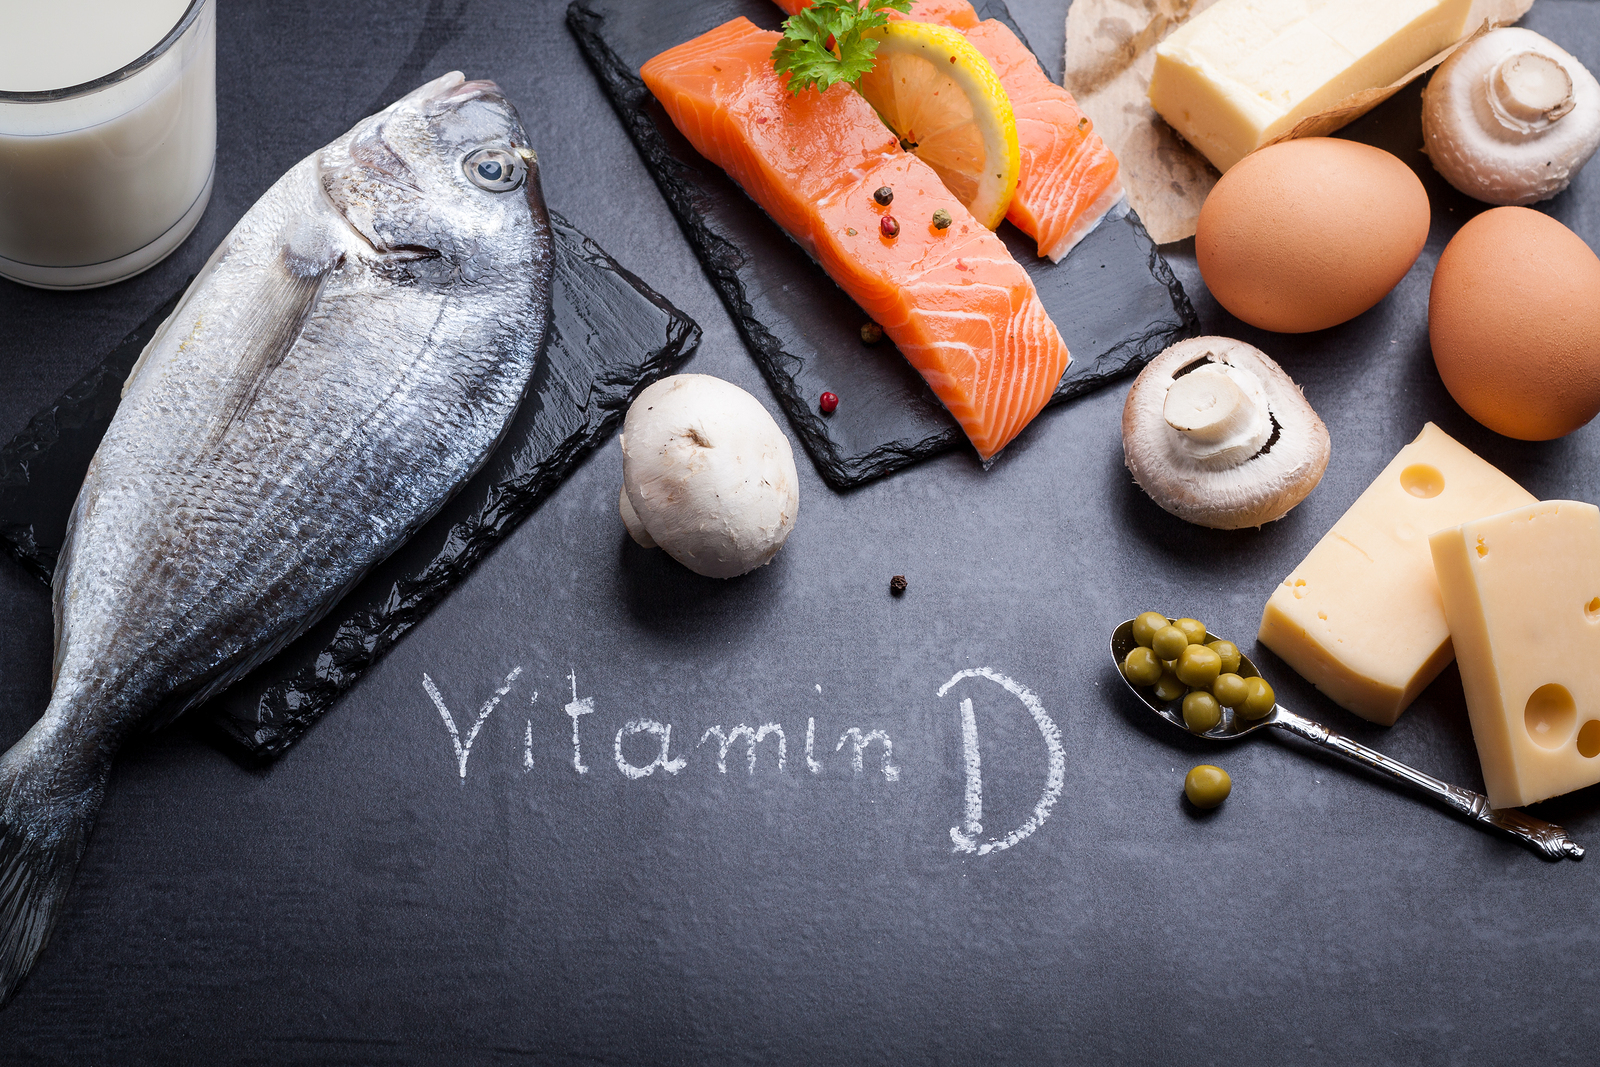 Effect of vitamin D supplementation on non-skeletal disorders: a systematic review